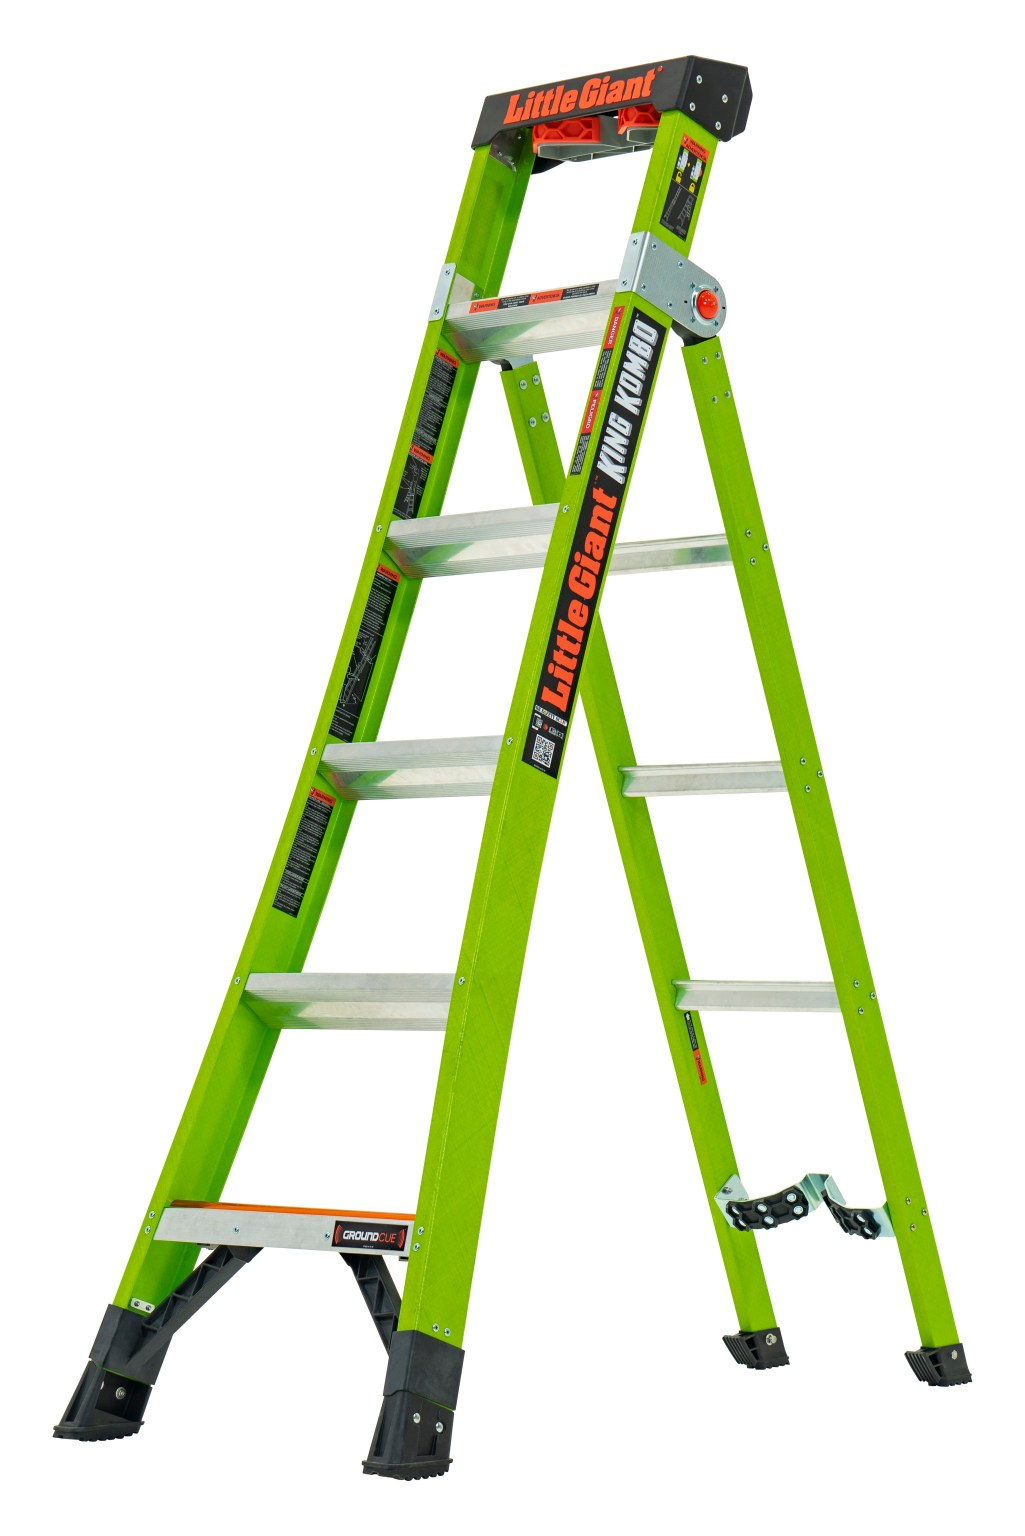 Little Giant Multi-Purpose King Kombo Ladder